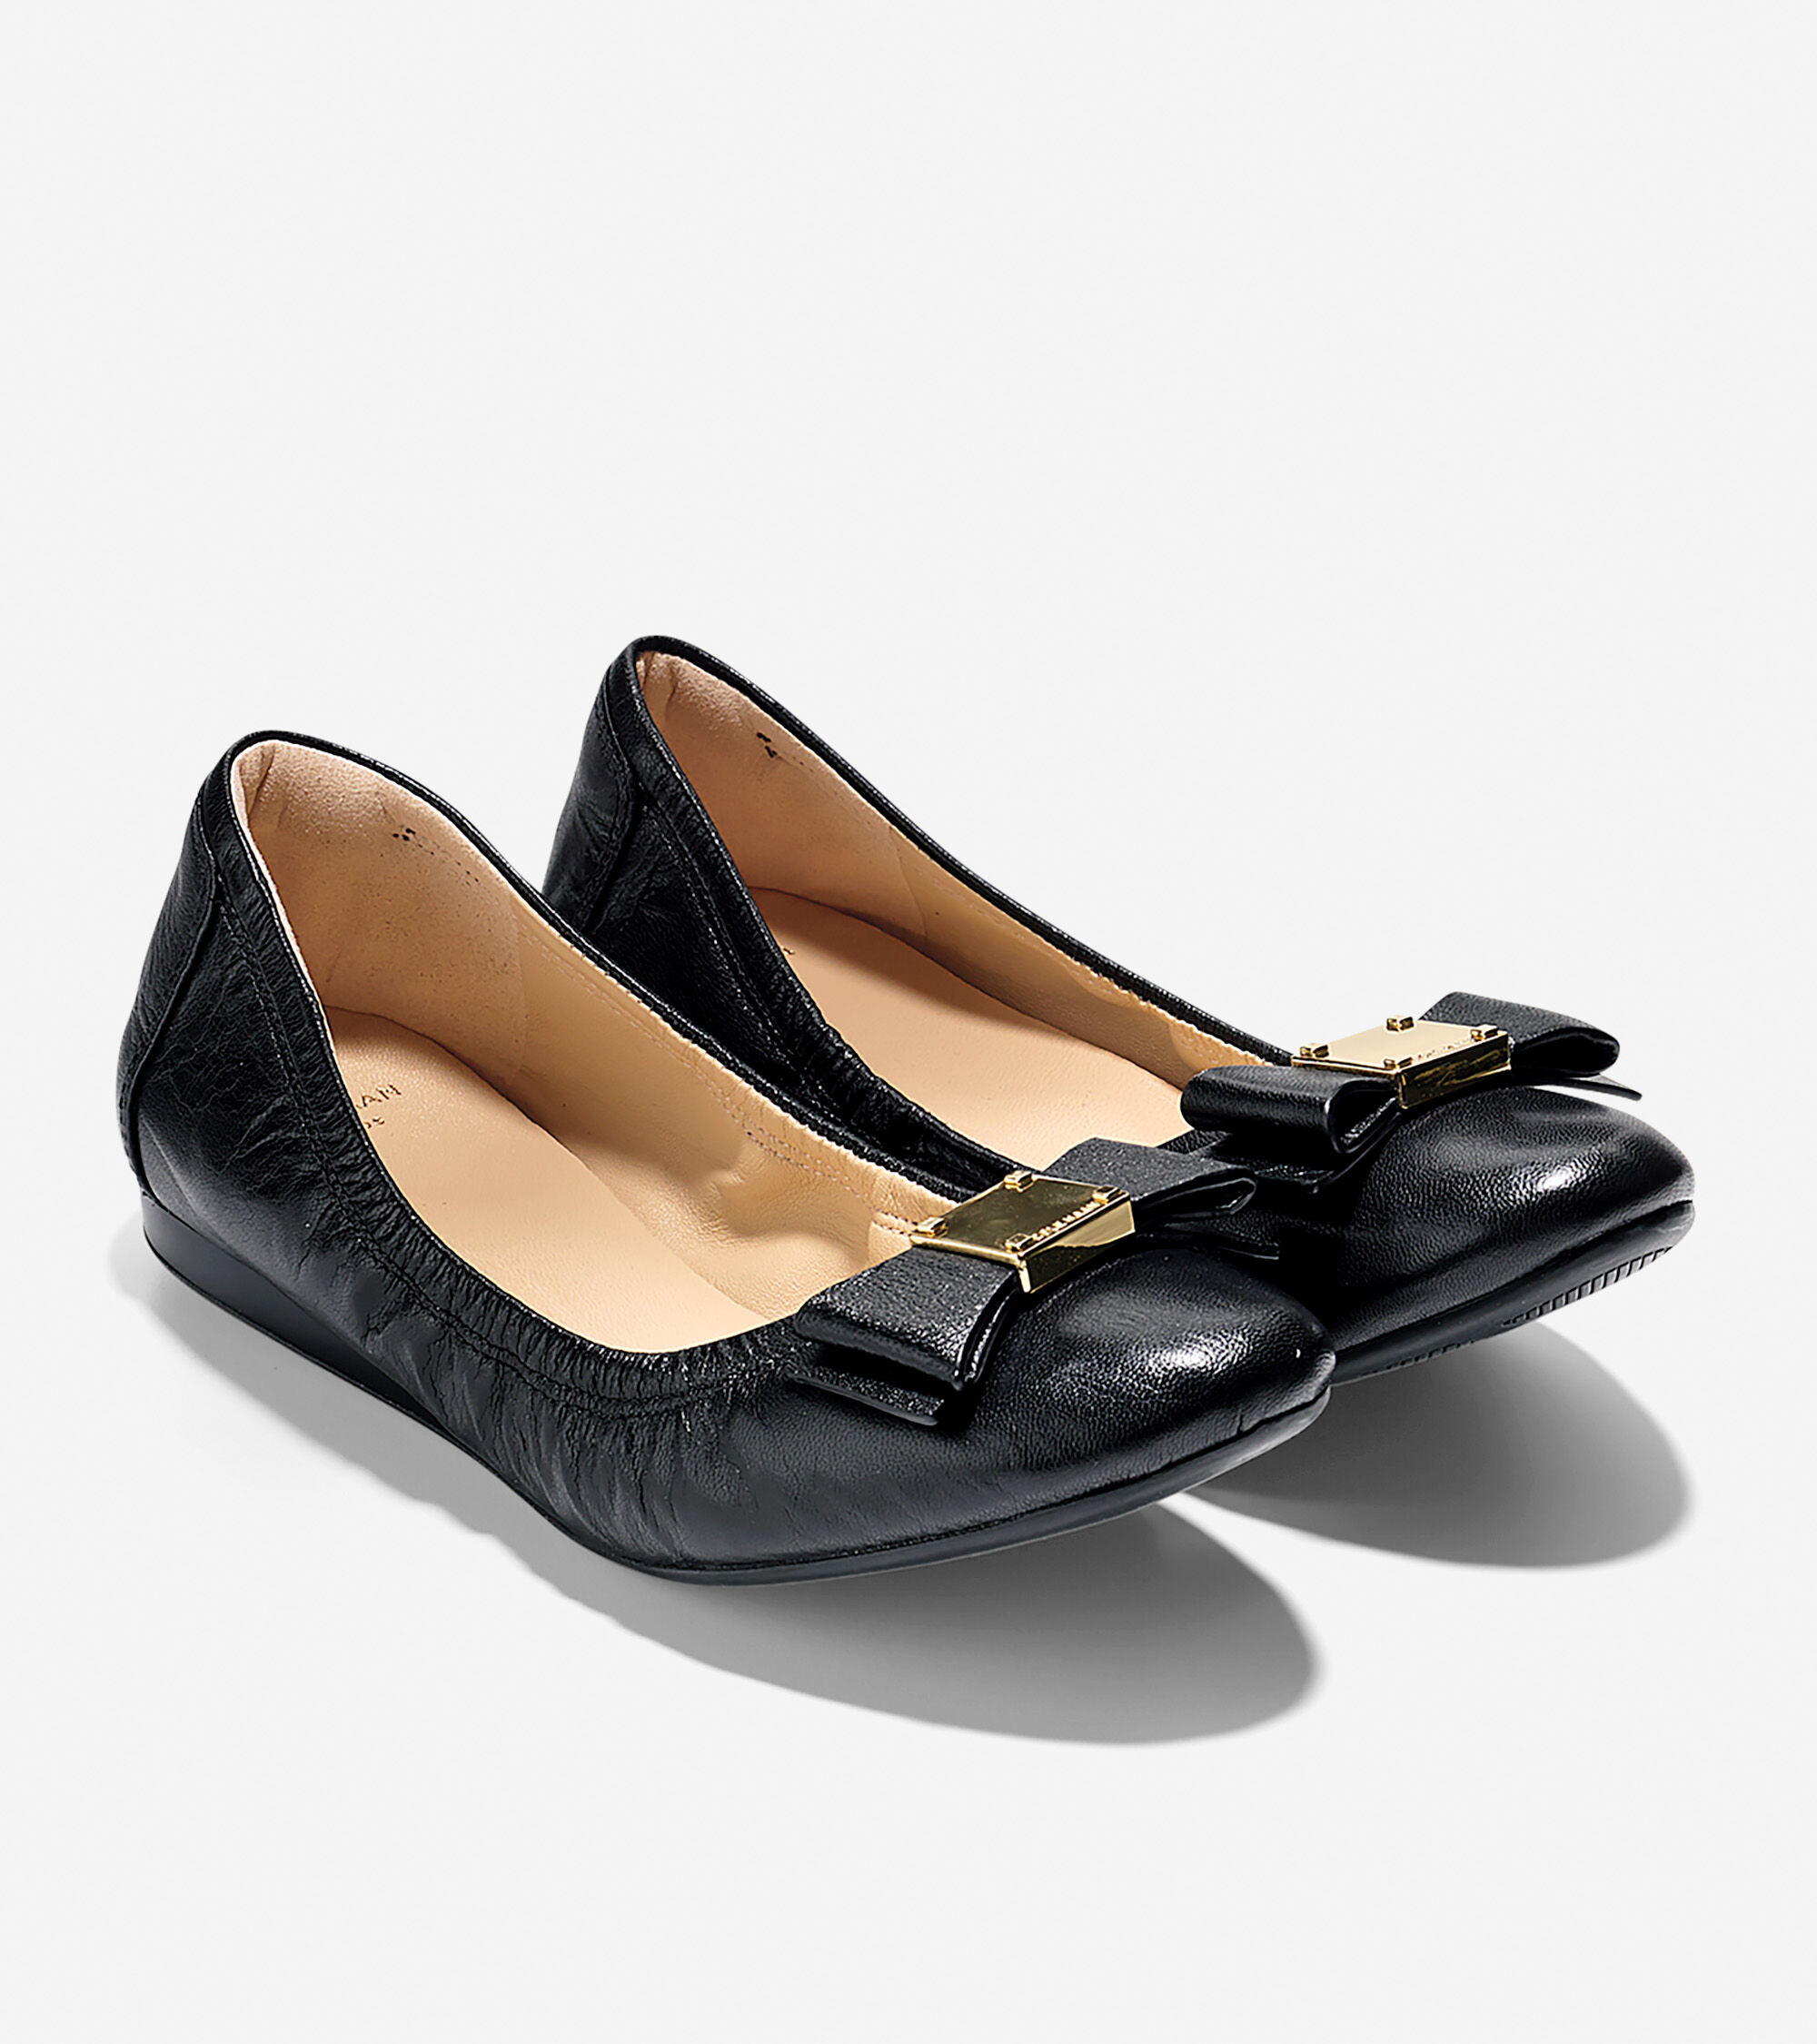 Cole Haan Tali Bow Ballet For Women On Sale